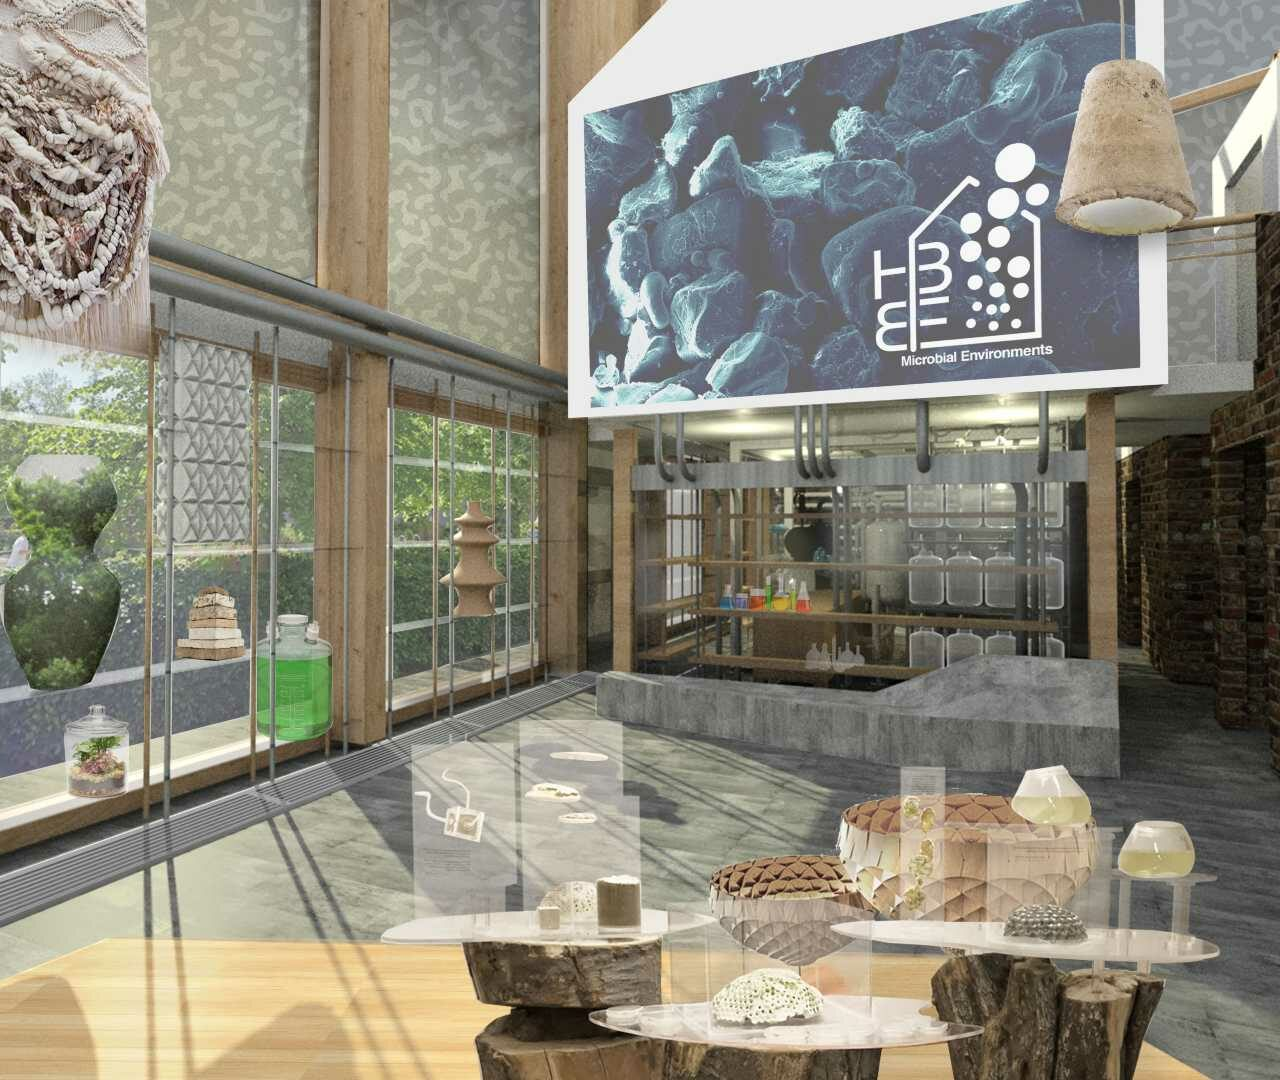 Experimental living building to be a testbed for materials, health and wellbeing